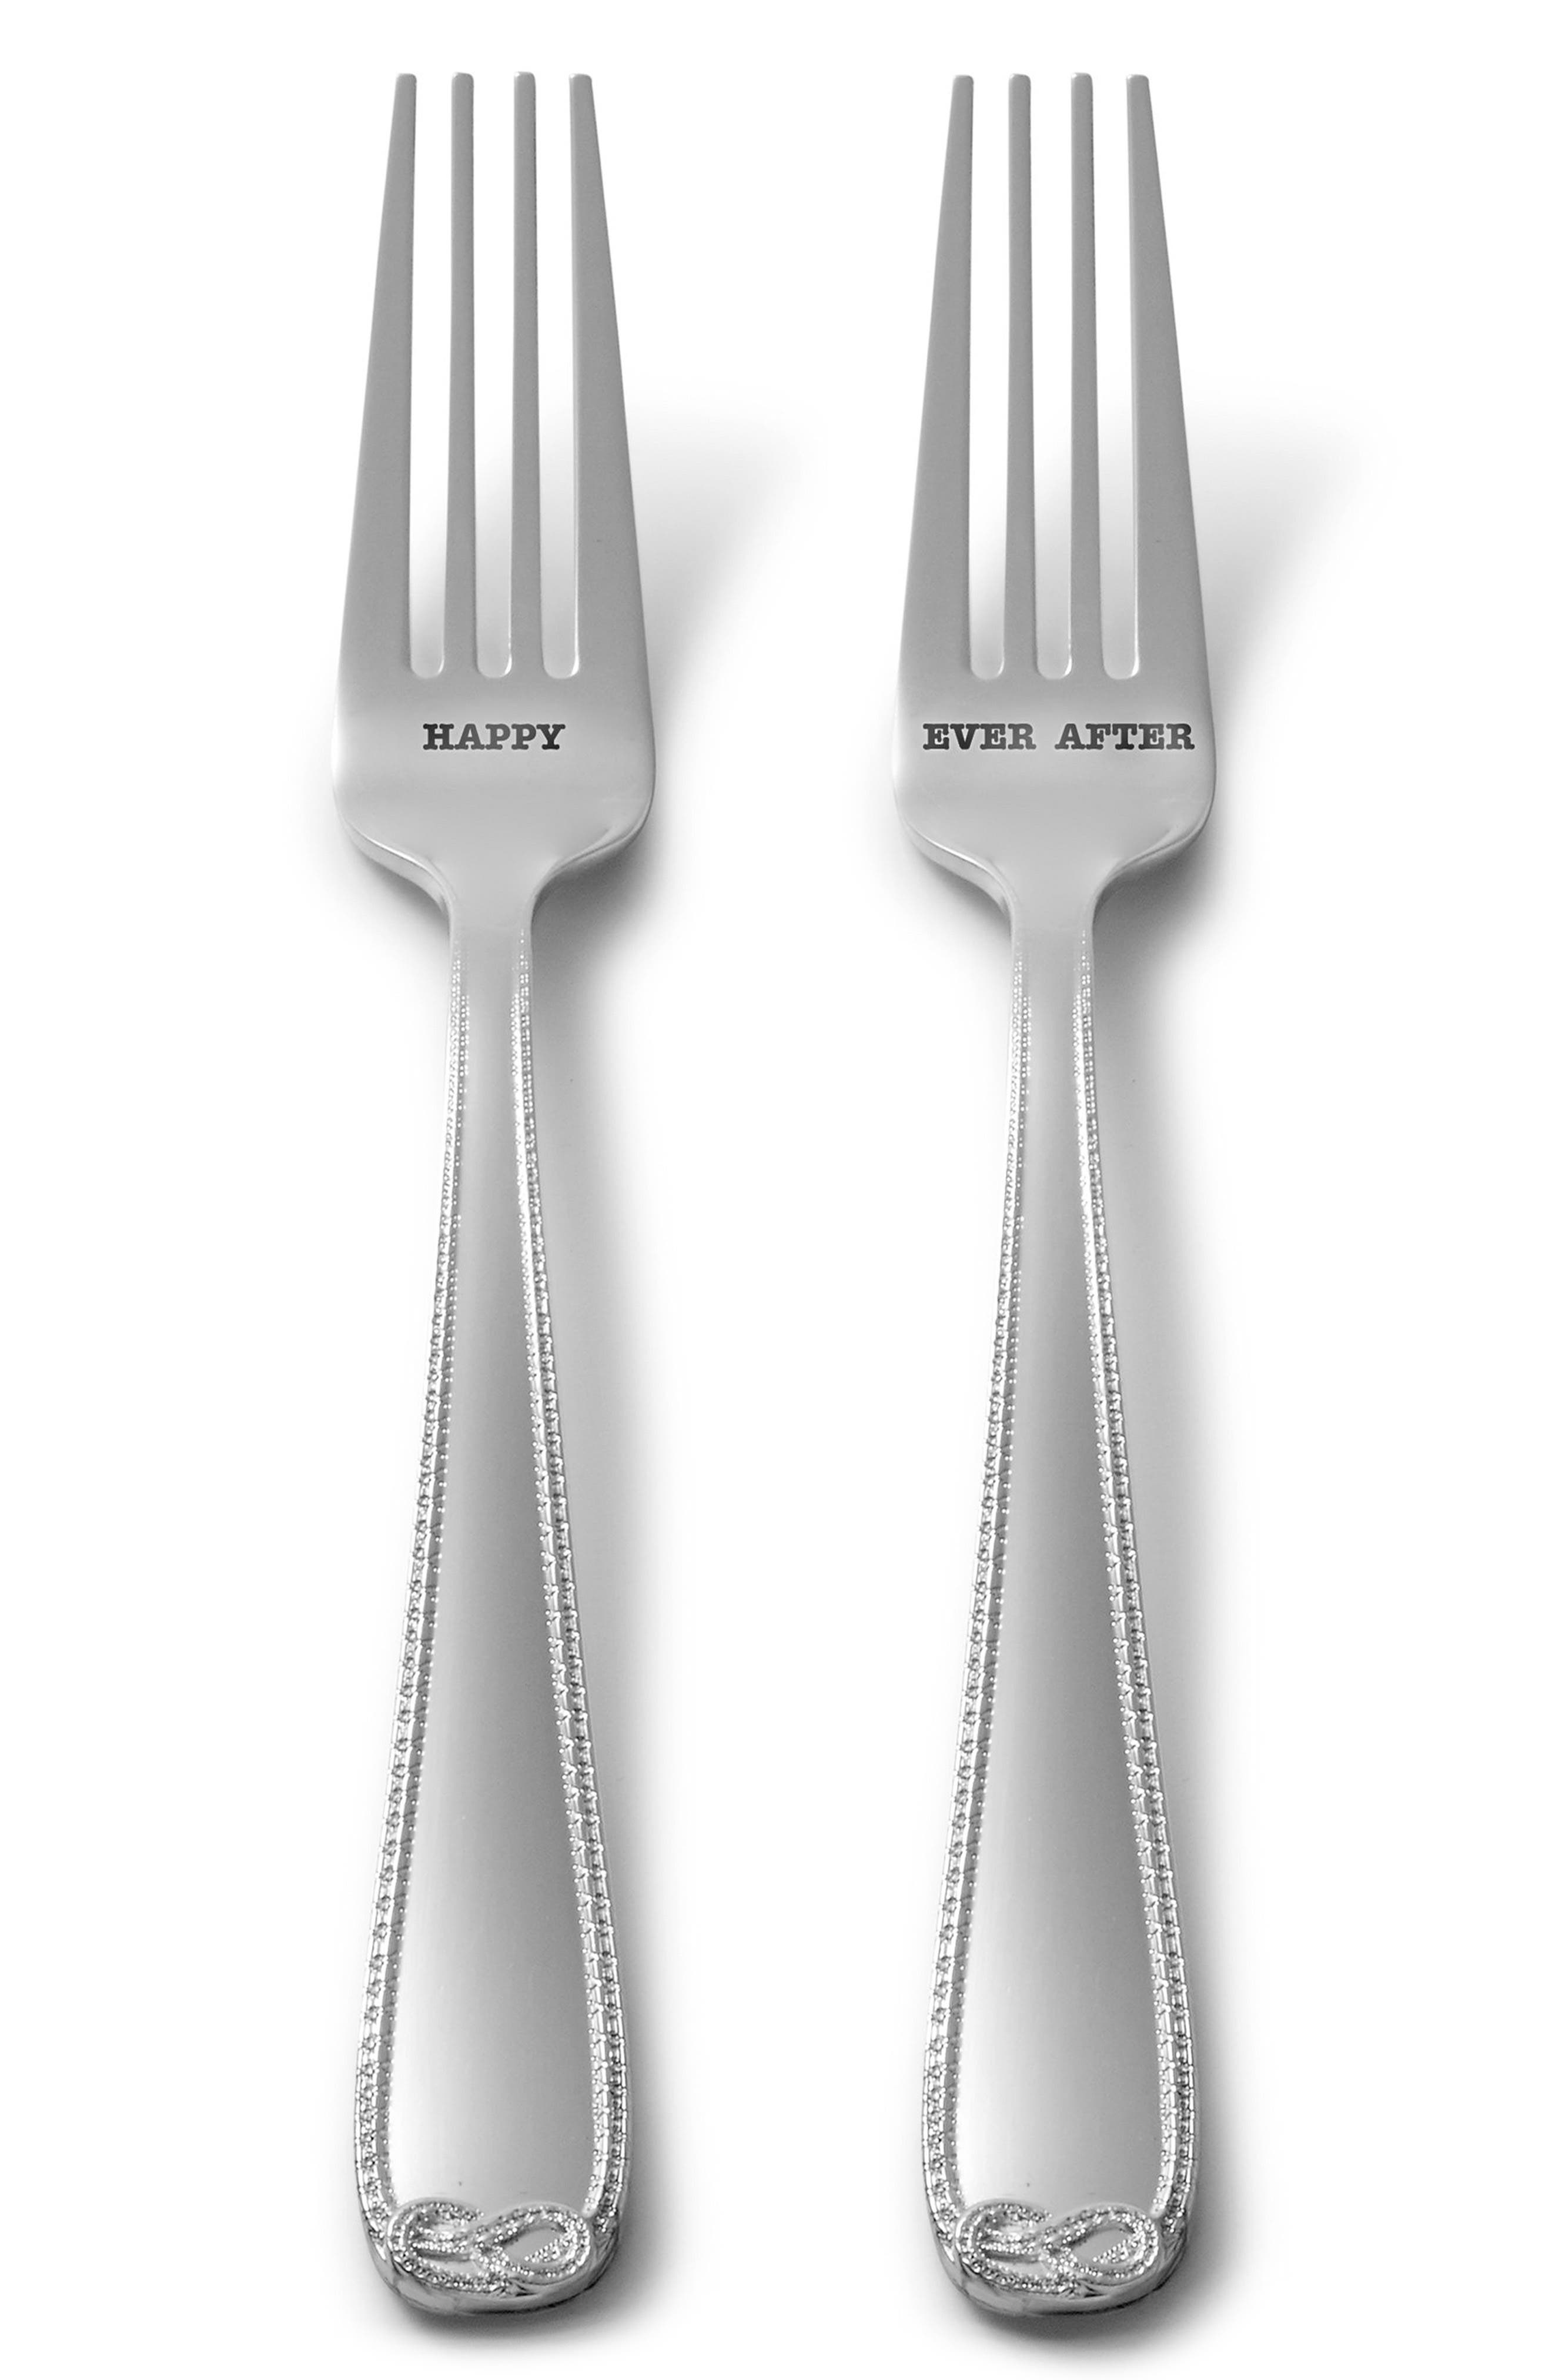 x Wedgwood Infinity Happy Ever After Set of 2 Silver Plated Forks,                             Main thumbnail 1, color,                             Metallic Silver